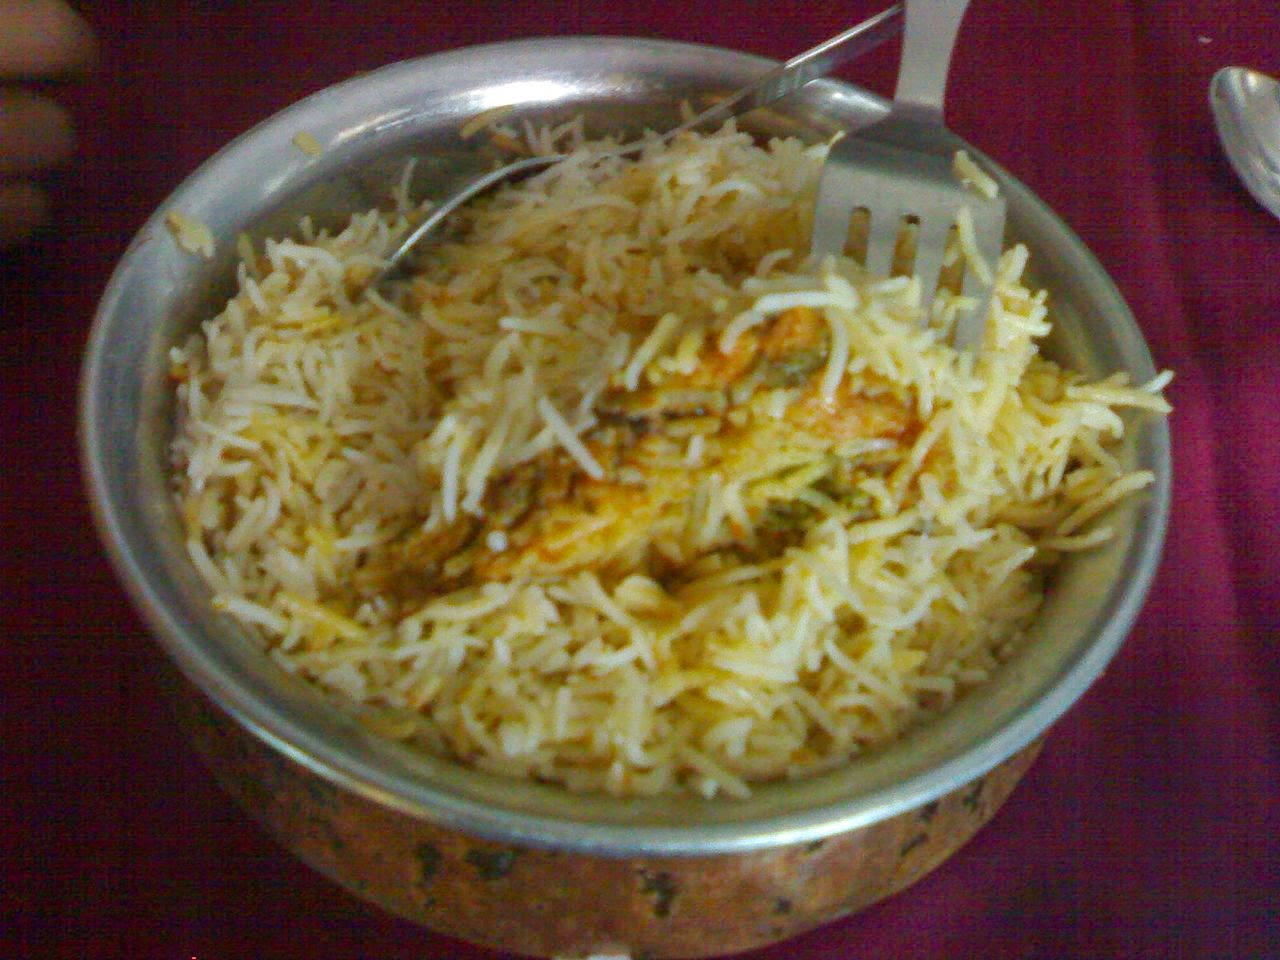 street food cuisine du monde recette de riz basmati au poulet hyderabadi biryani ramadan inde. Black Bedroom Furniture Sets. Home Design Ideas